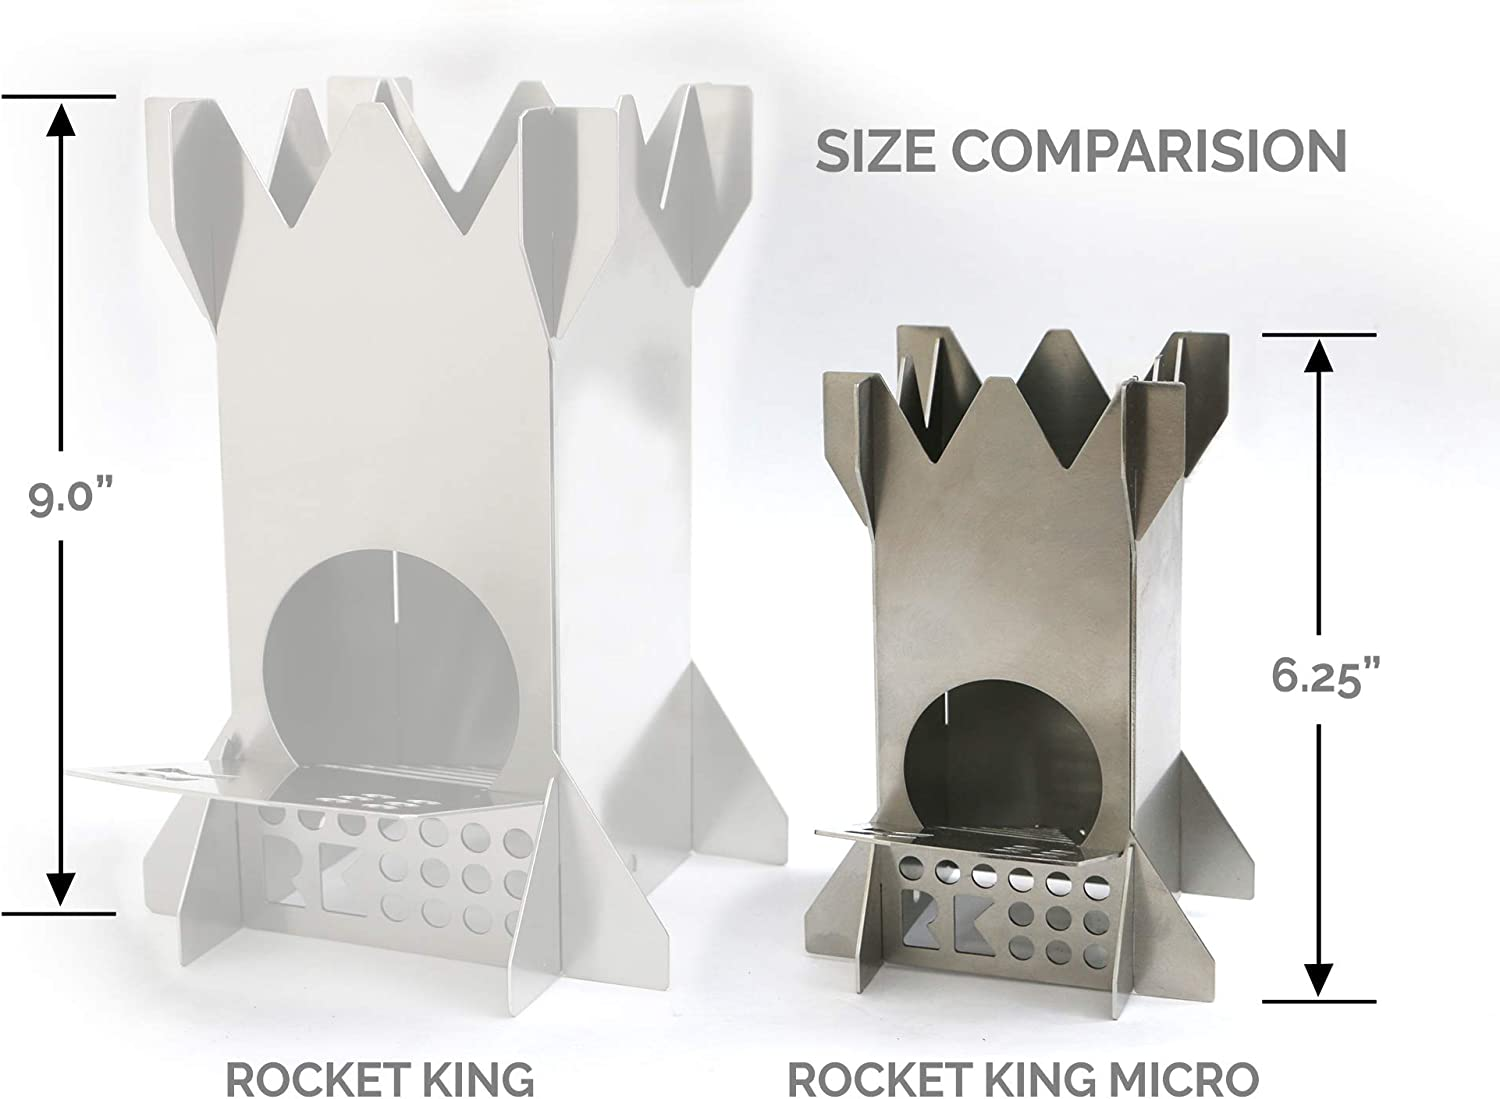 Rocket King Micro Flat Pack Stainless Steel Wood Burning Camping Stove Made in USA Perfect for Backpacking Hiking and Canoeing